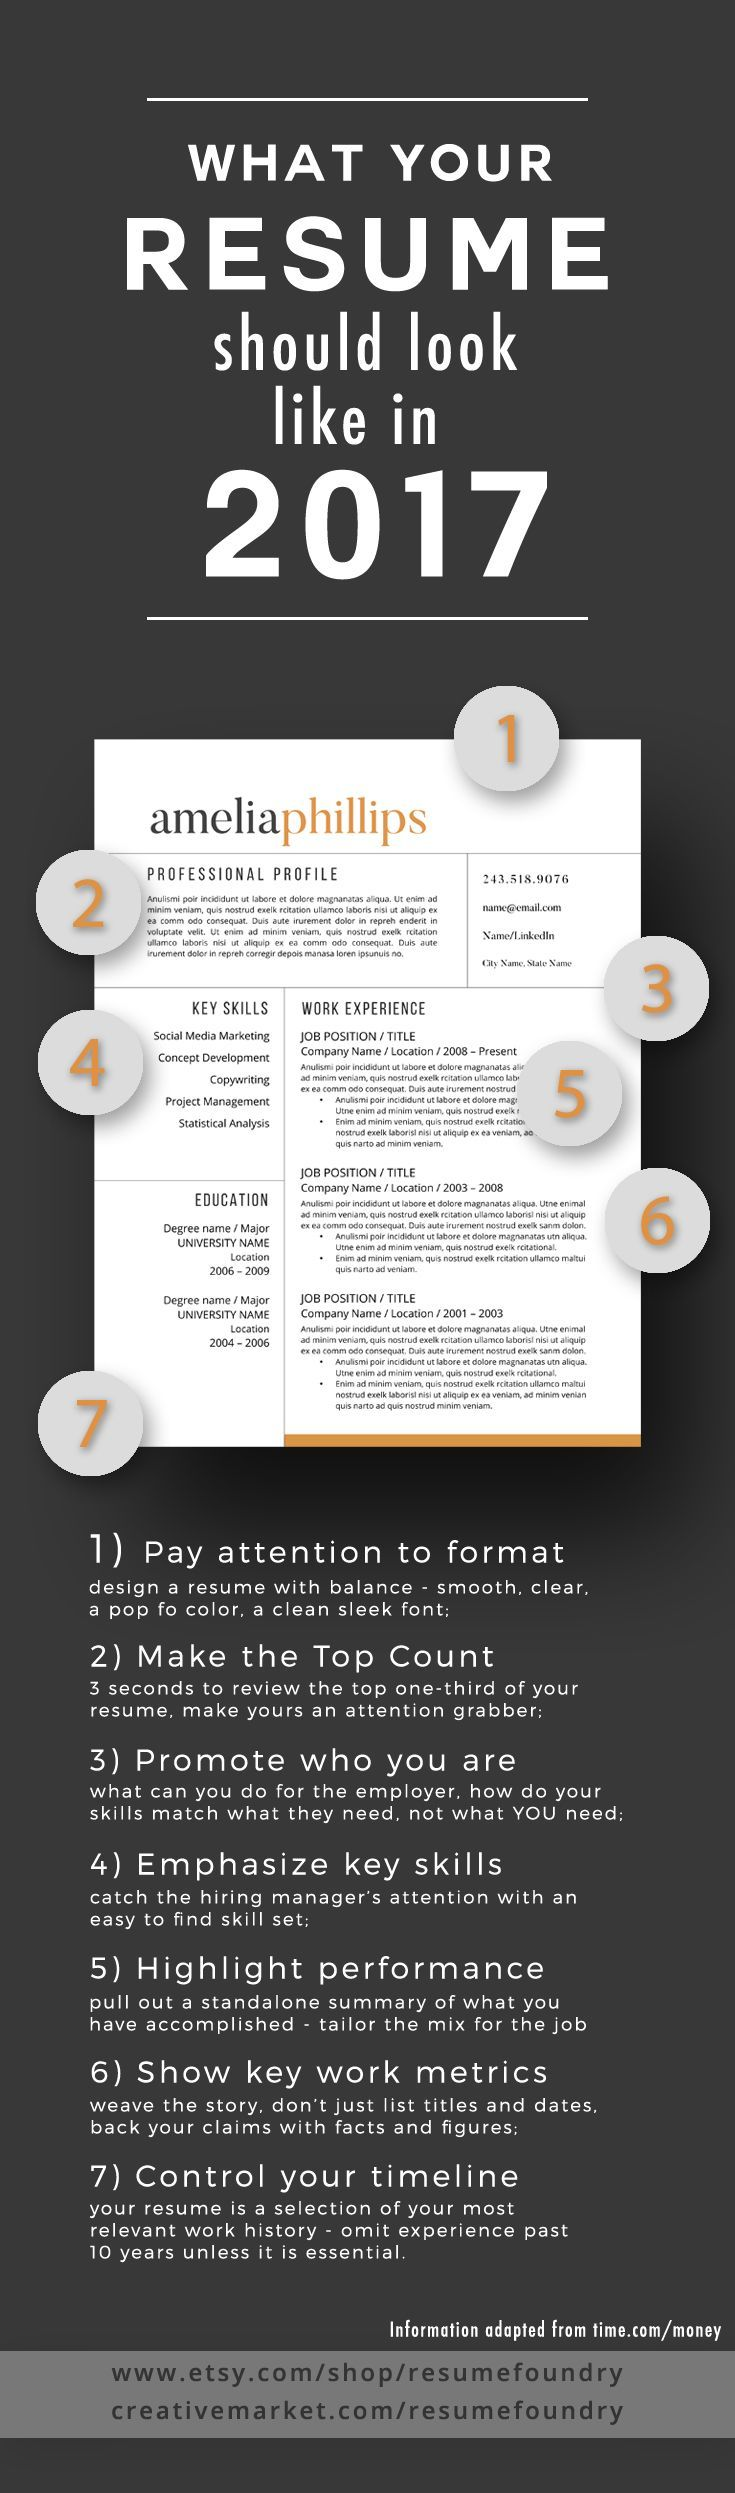 7 Resume Design Concepts Which Get You Hired Resume Tips In 2020 Resume Tips Job Interview Helpful Hints